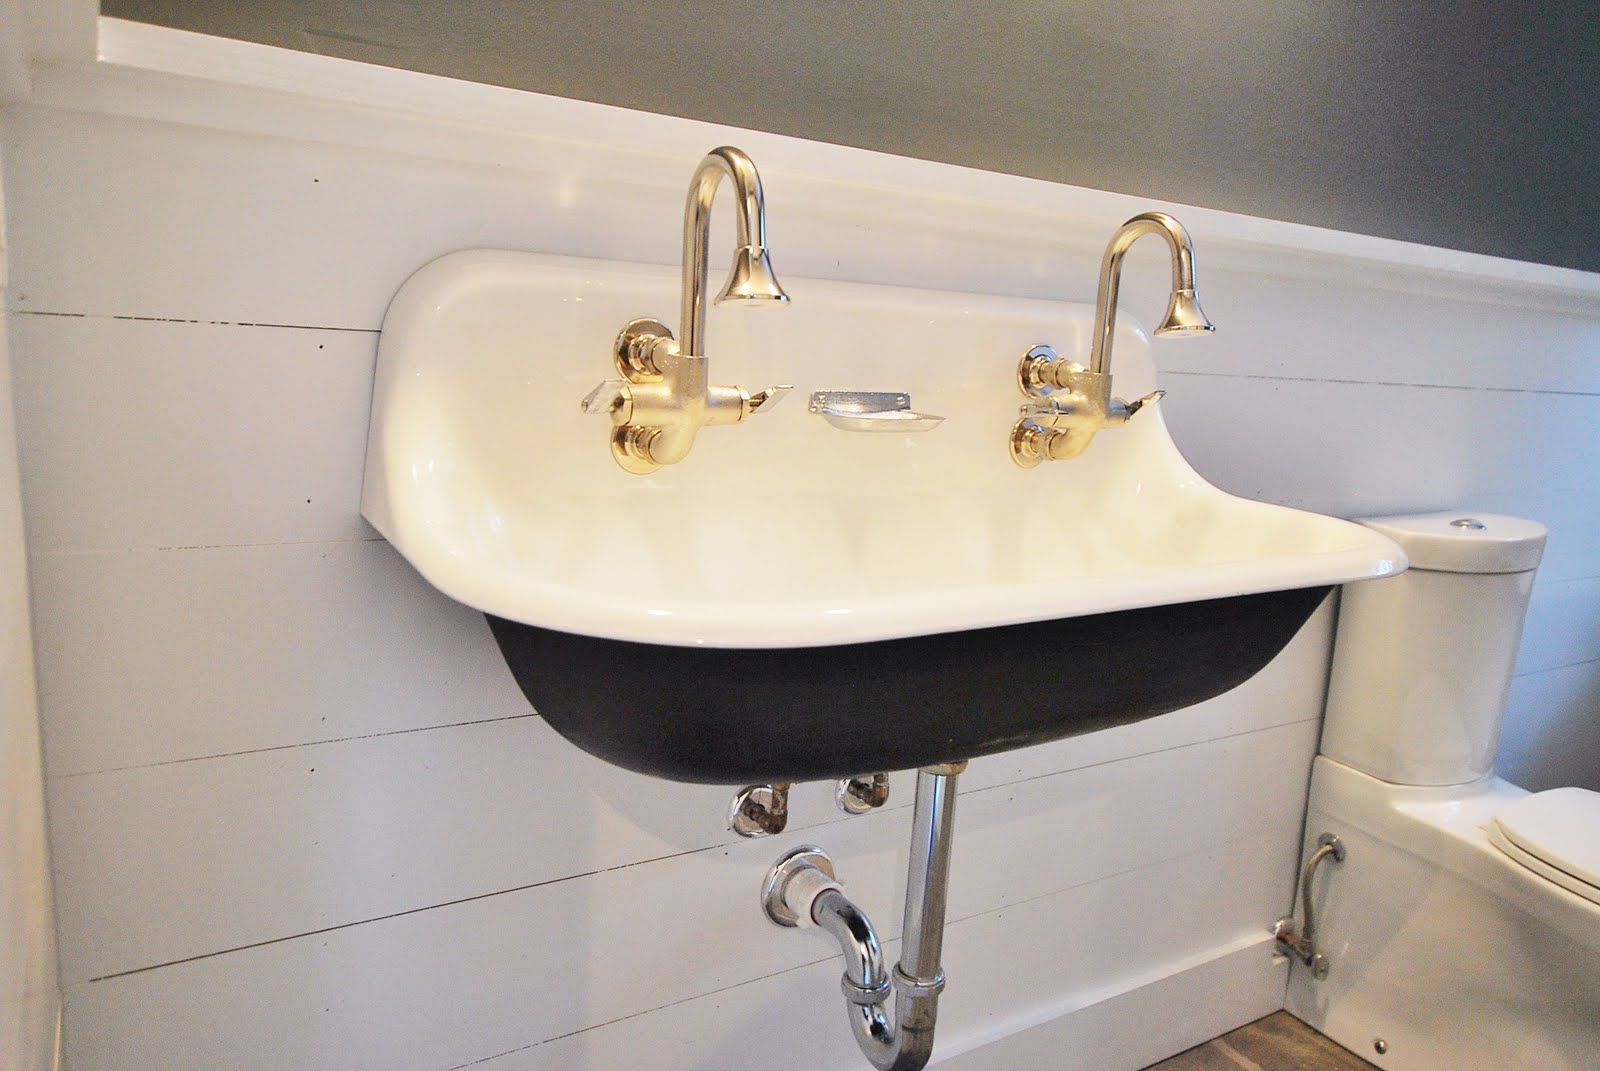 Small wall mounted bathroom sinks - Drawing Of Small Wall Mounted Sink A Good Choice For Space Challenged Bathroom